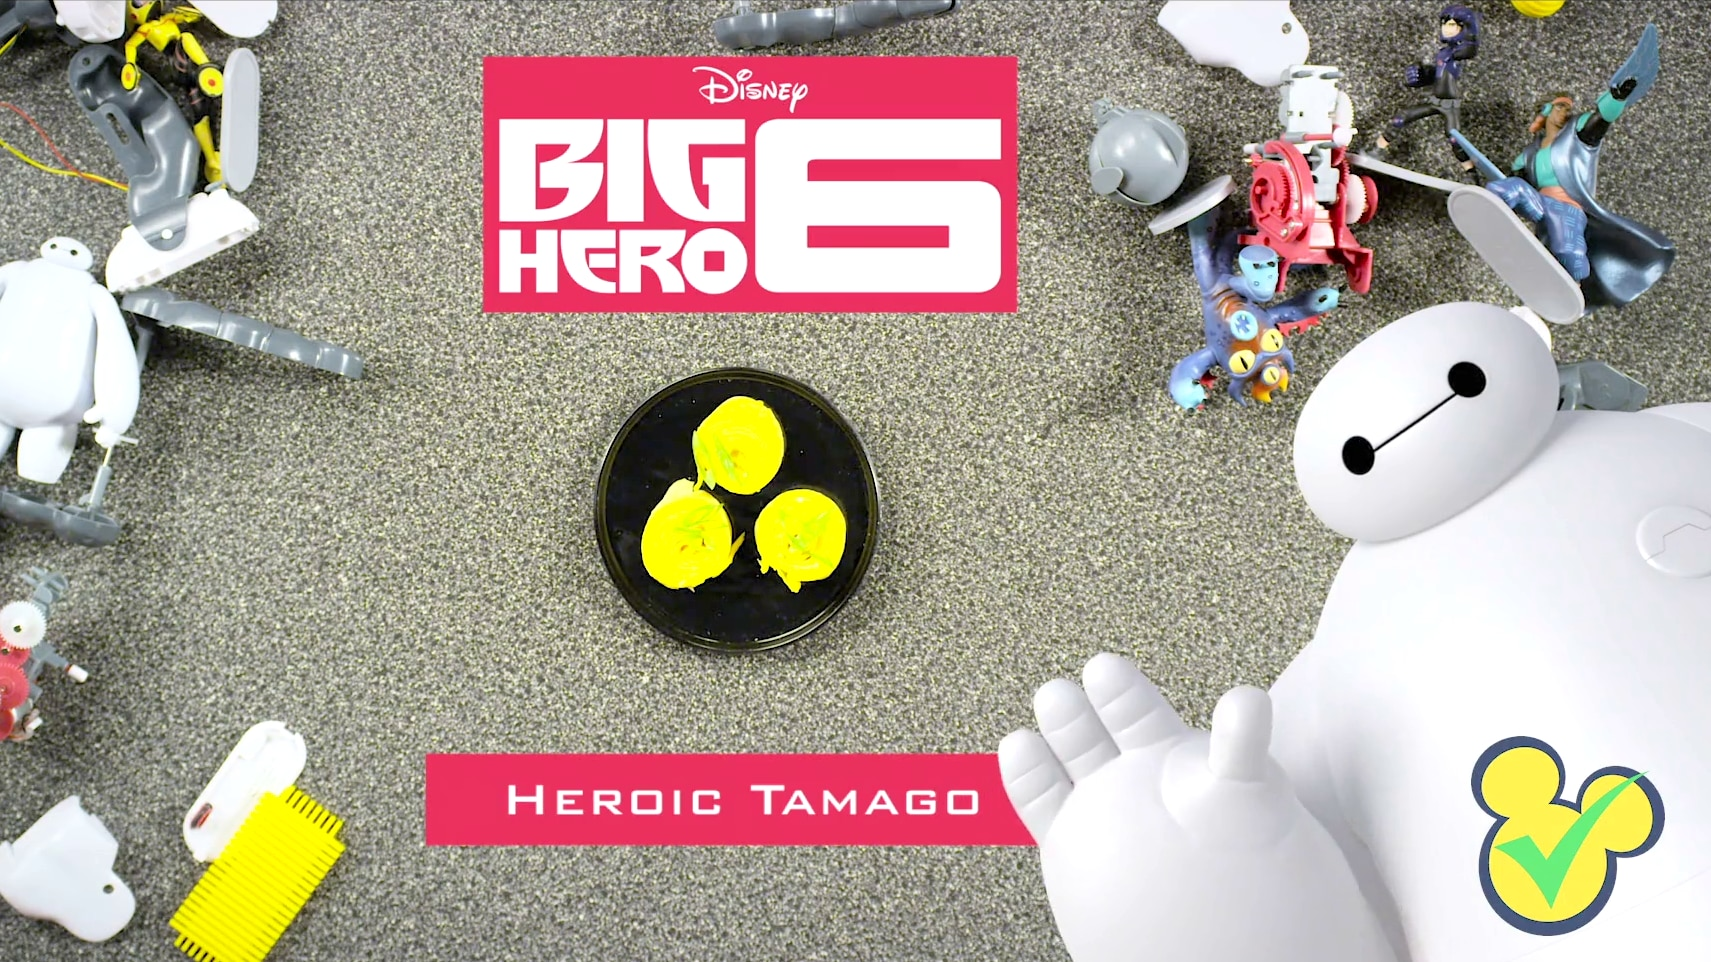 Big Hero Six - Heroic Tamago | Dishes By Disney